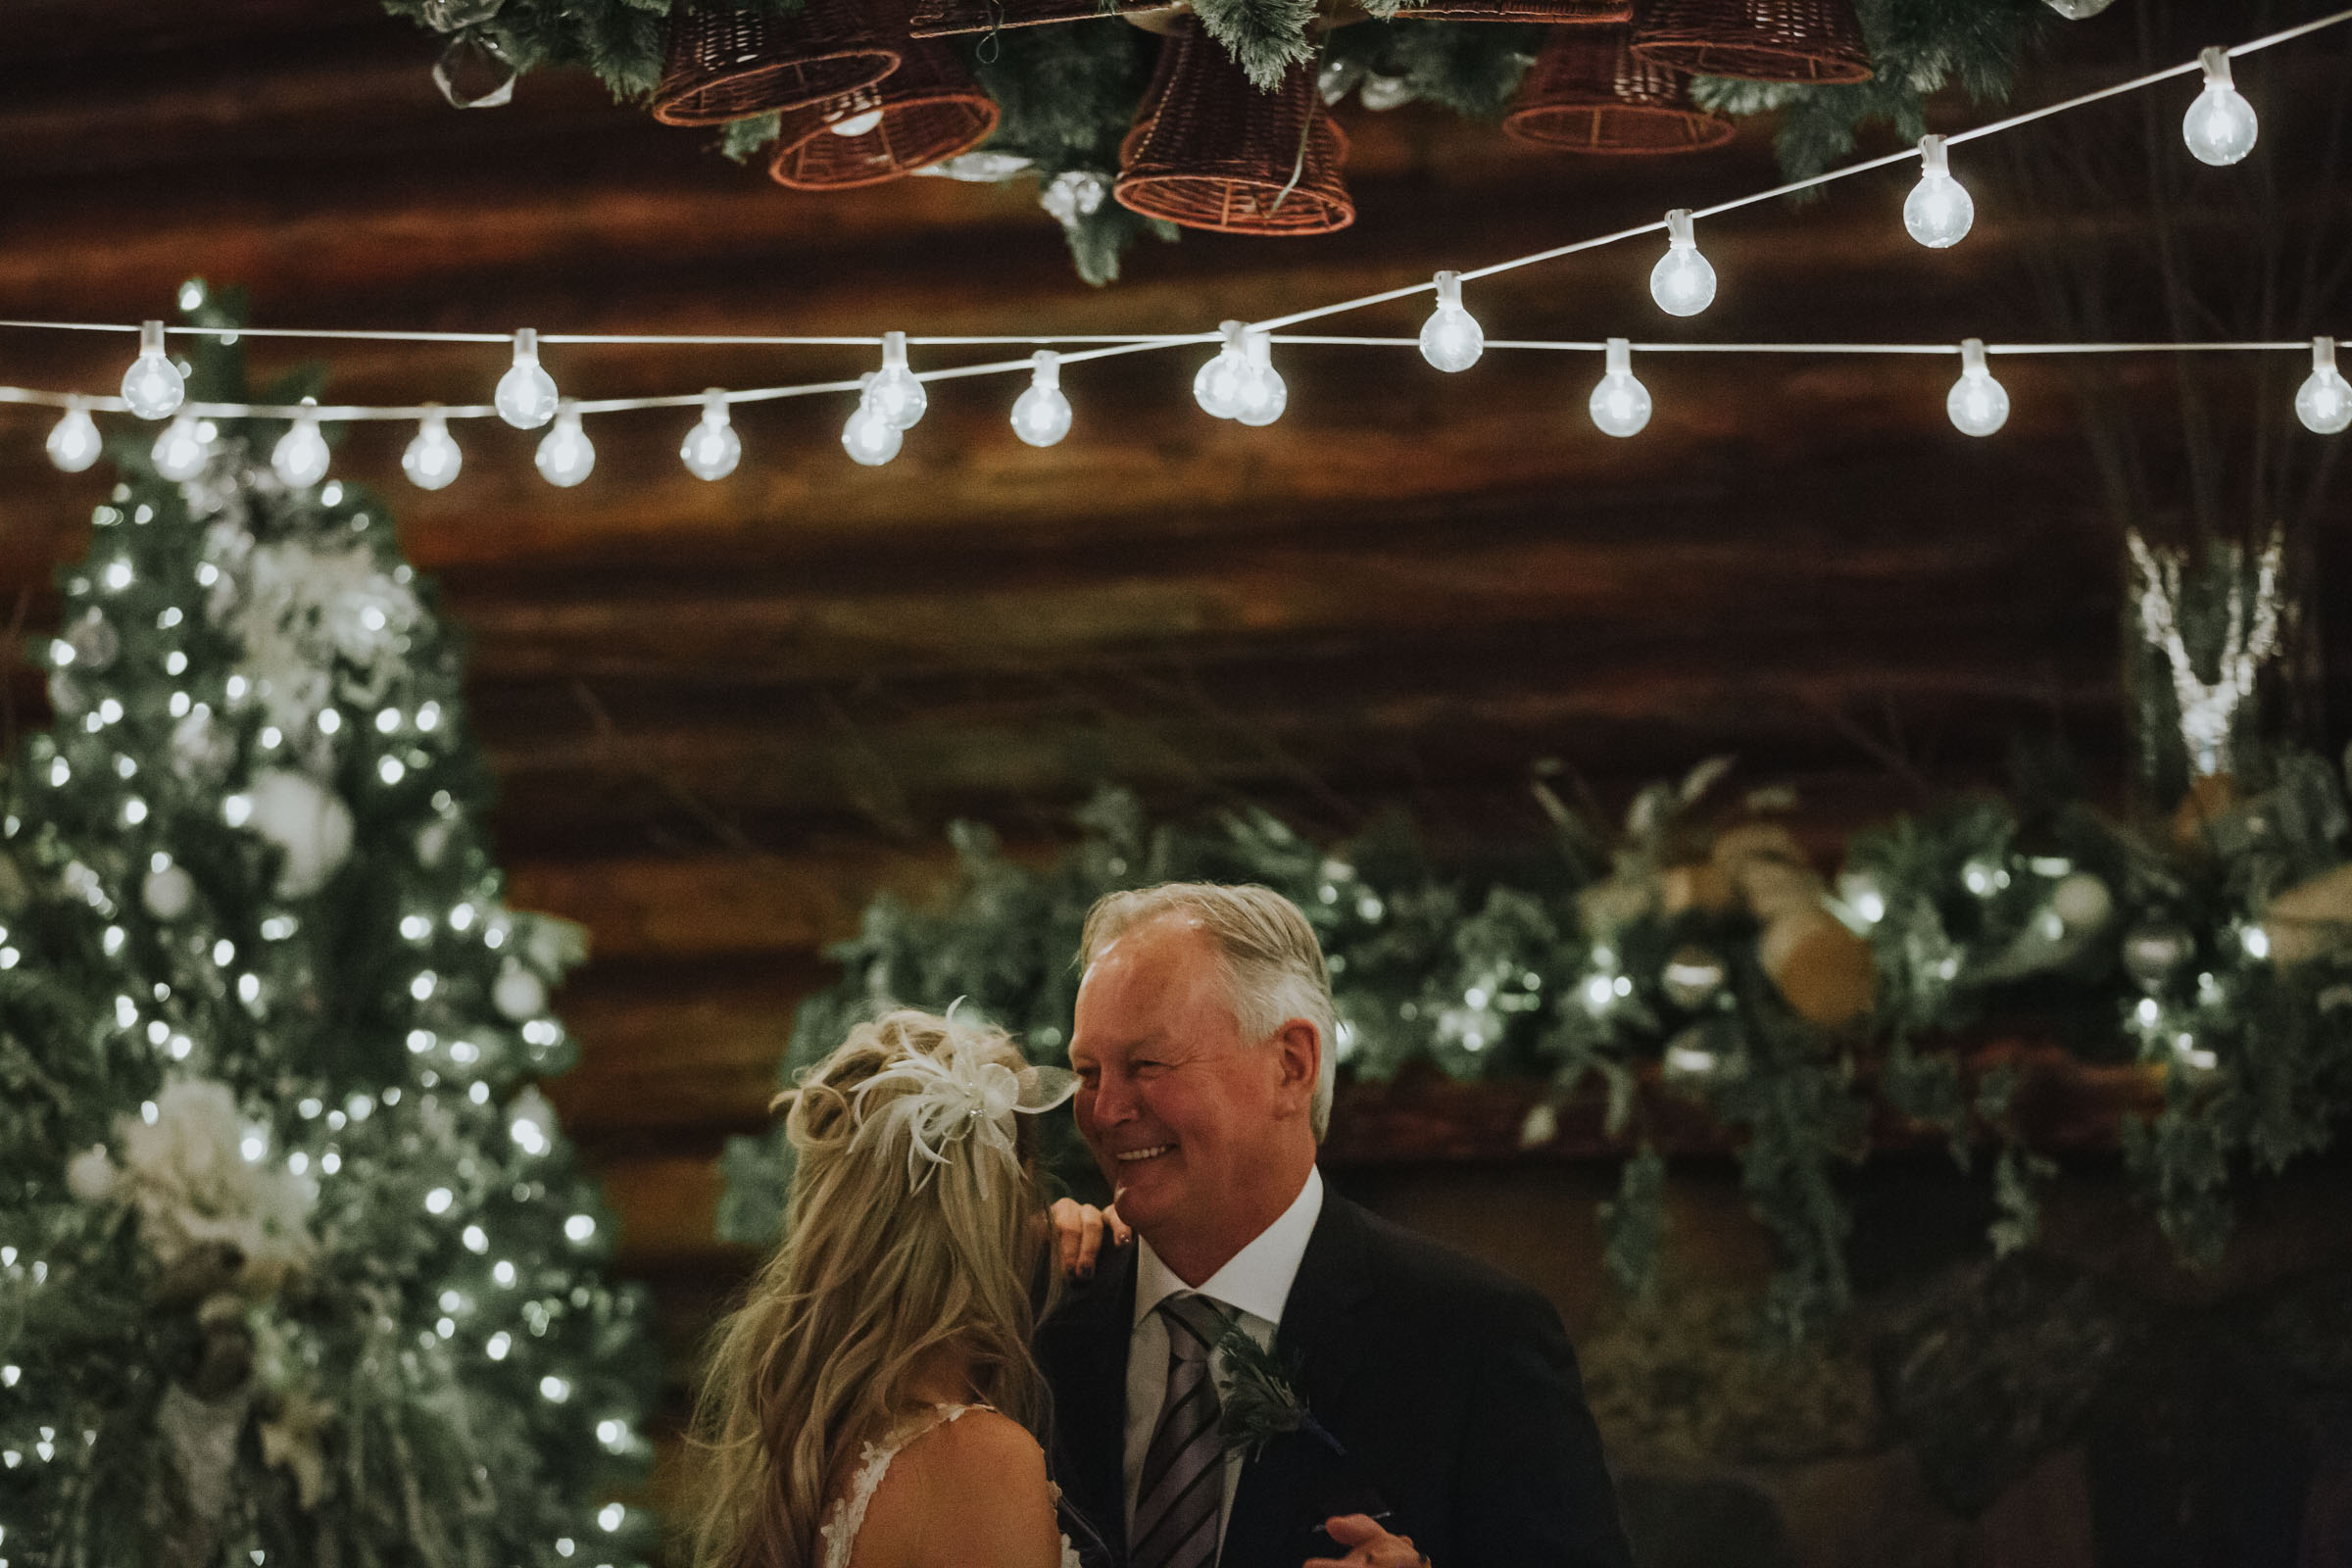 Schrumannwedding__MGL6215_dec102016.jpg